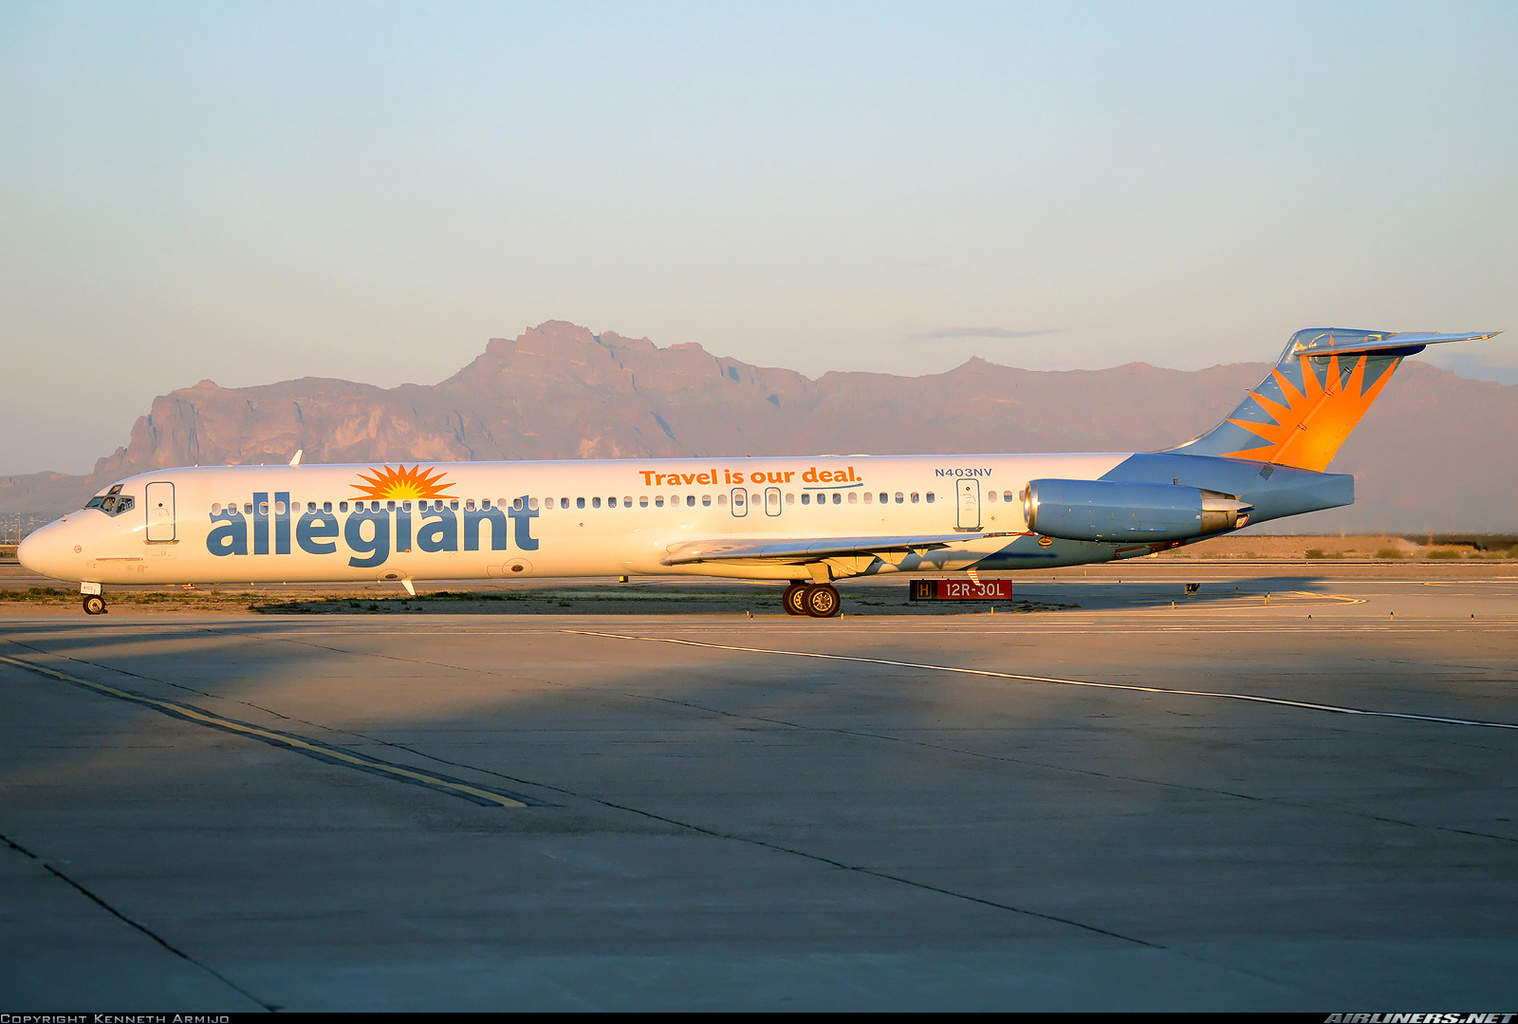 Allegiant passengers clap as family walks out of the plane because of allergic reaction